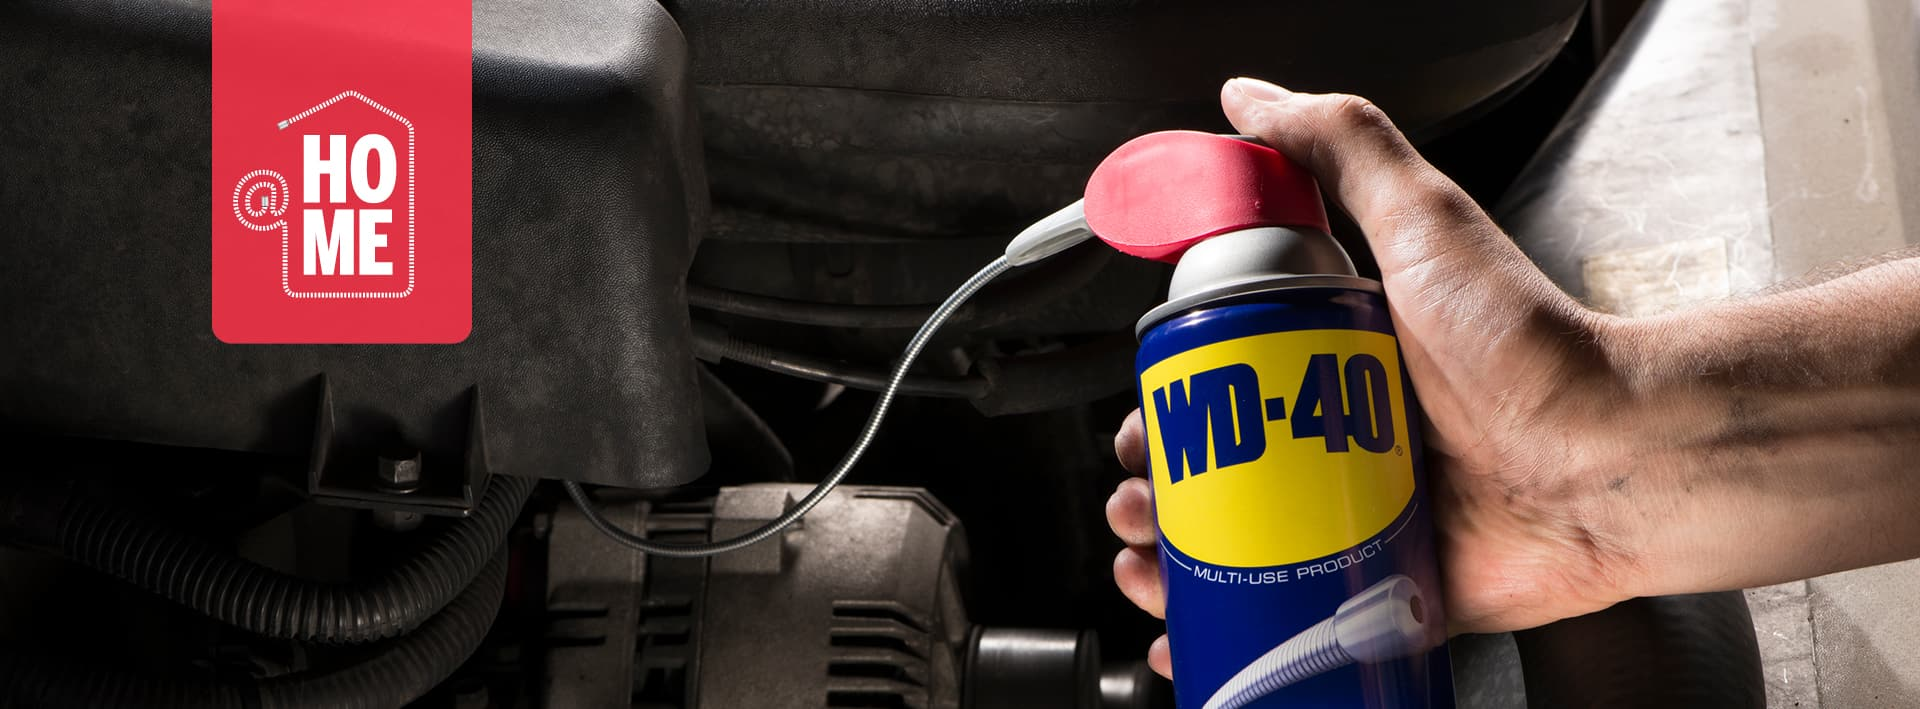 WD-40 header @home